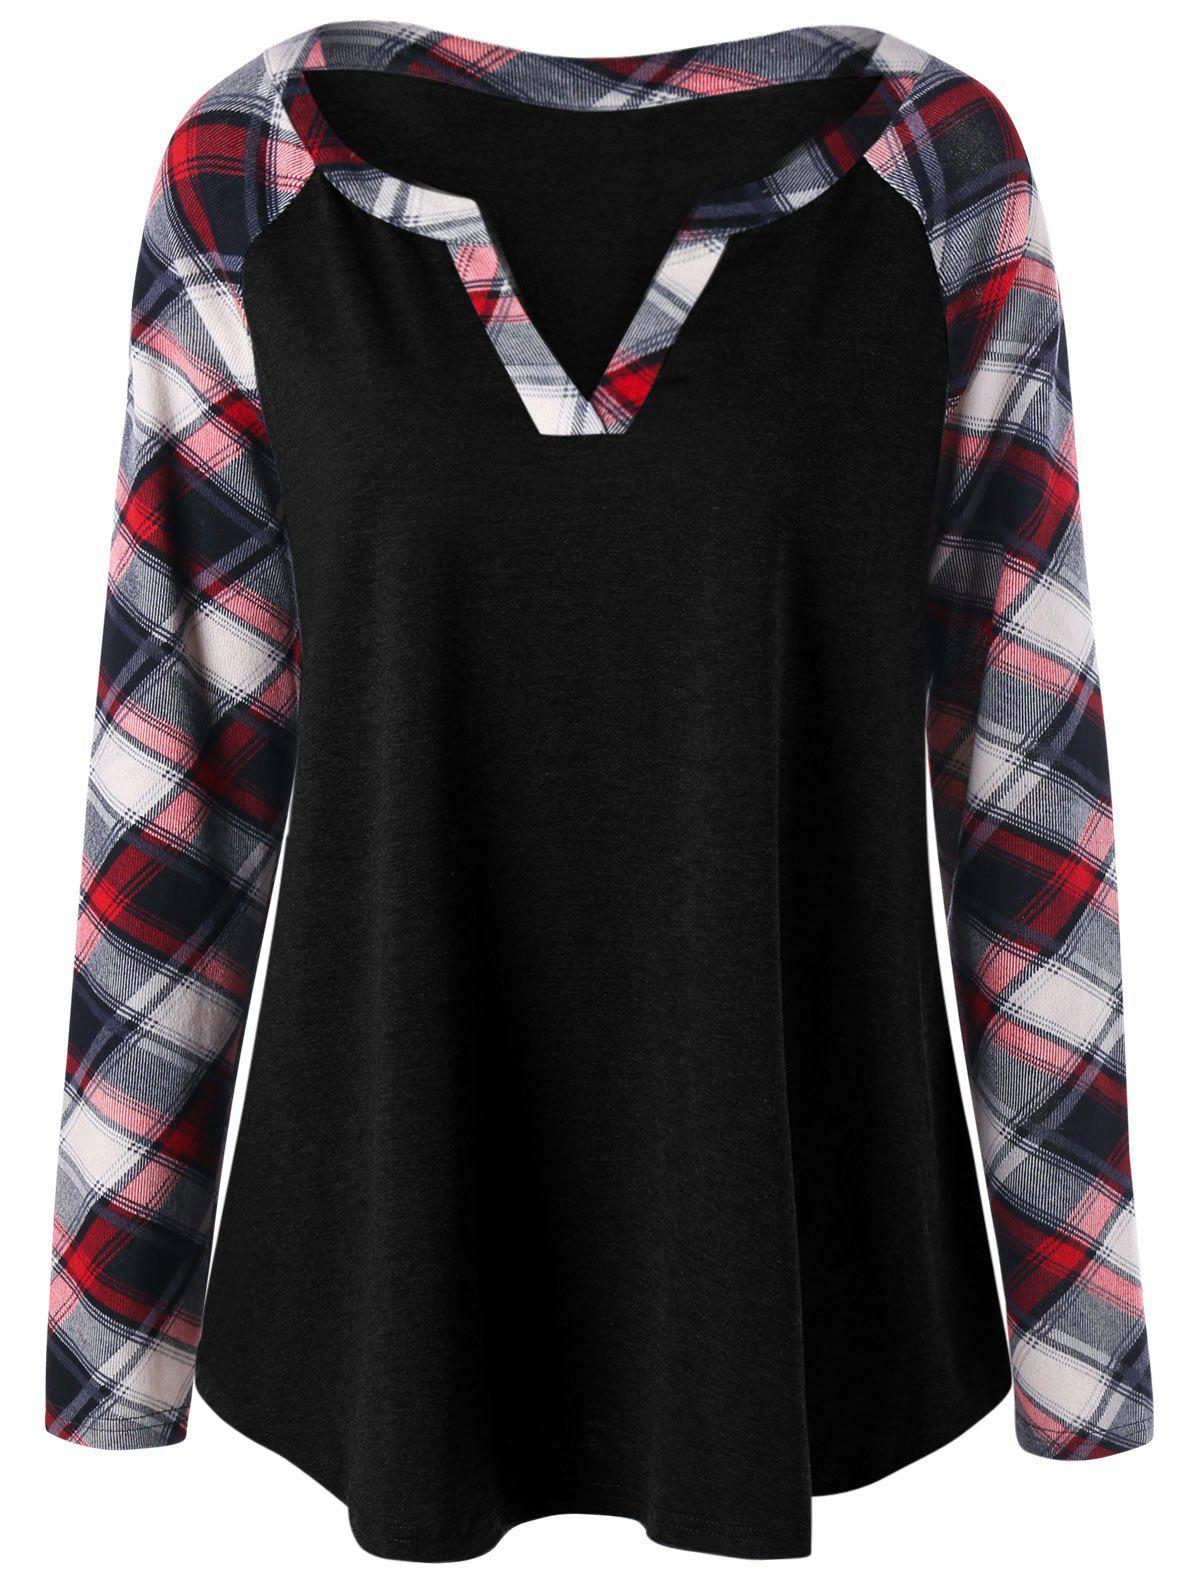 Plus Size Raglan Sleeve Plaid Top - BLACK 2XL